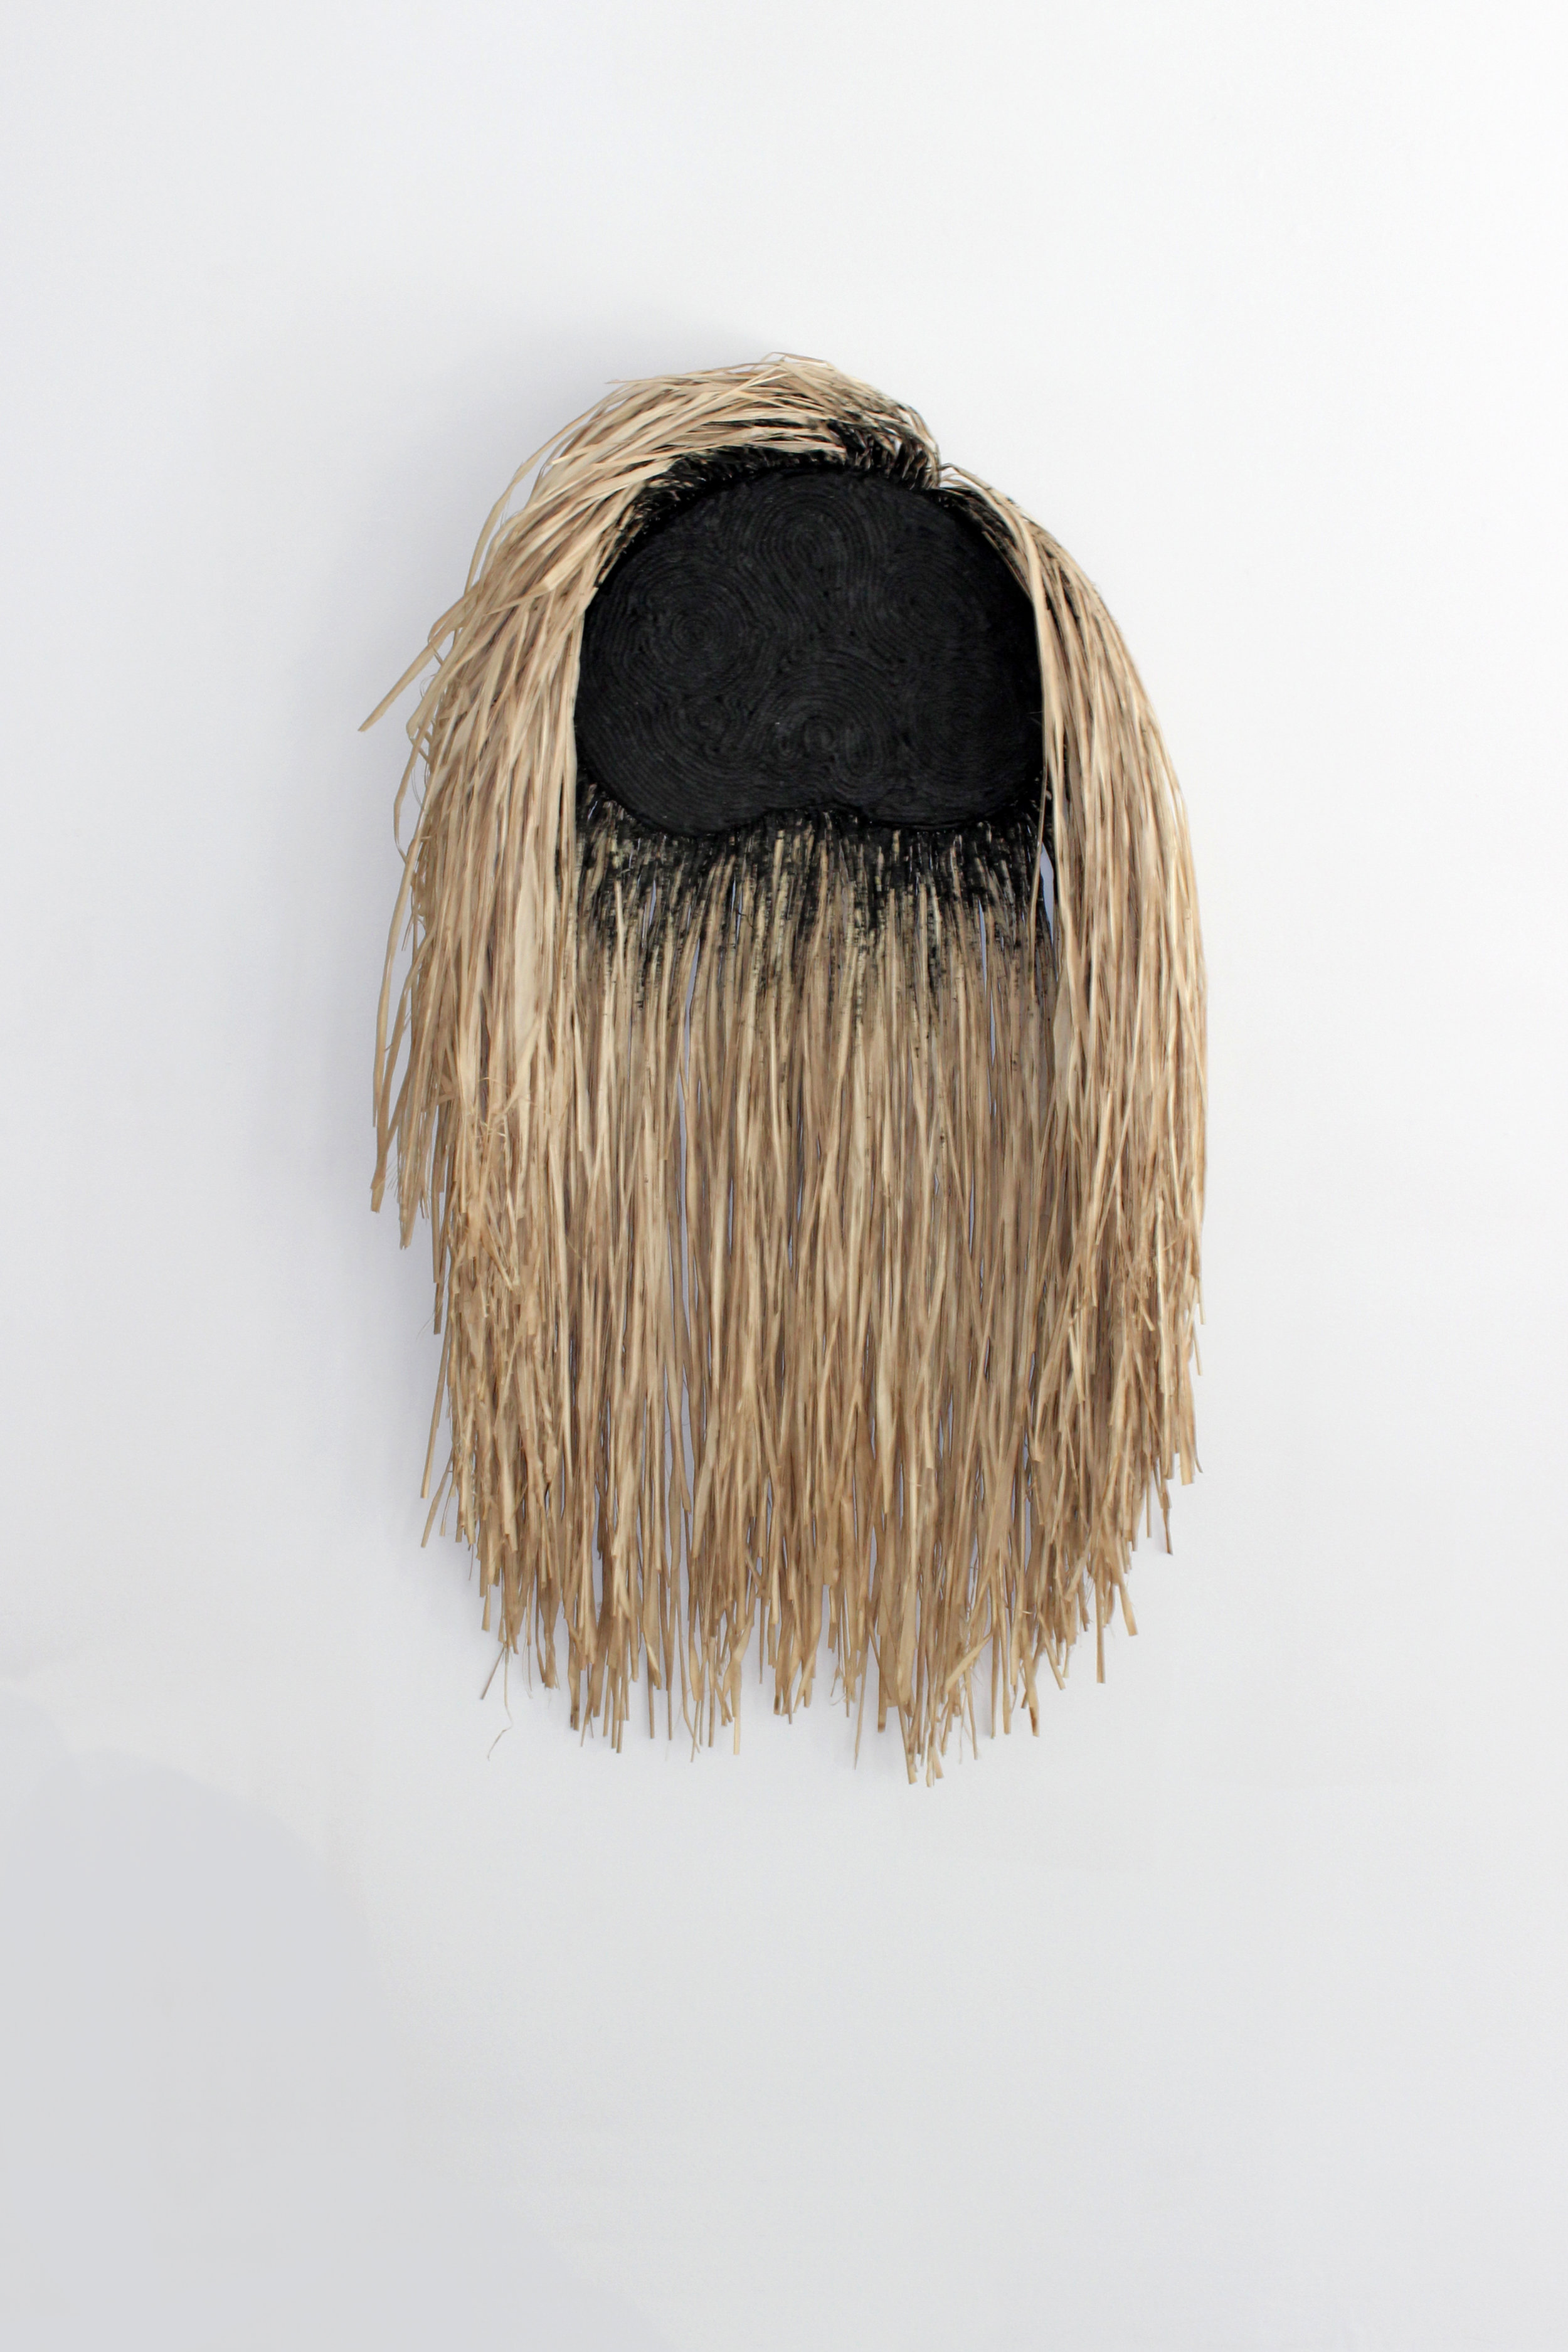 Wildman (black)  , 2019, cotton, raffia, grout on wood panel, 28 x 44 inches